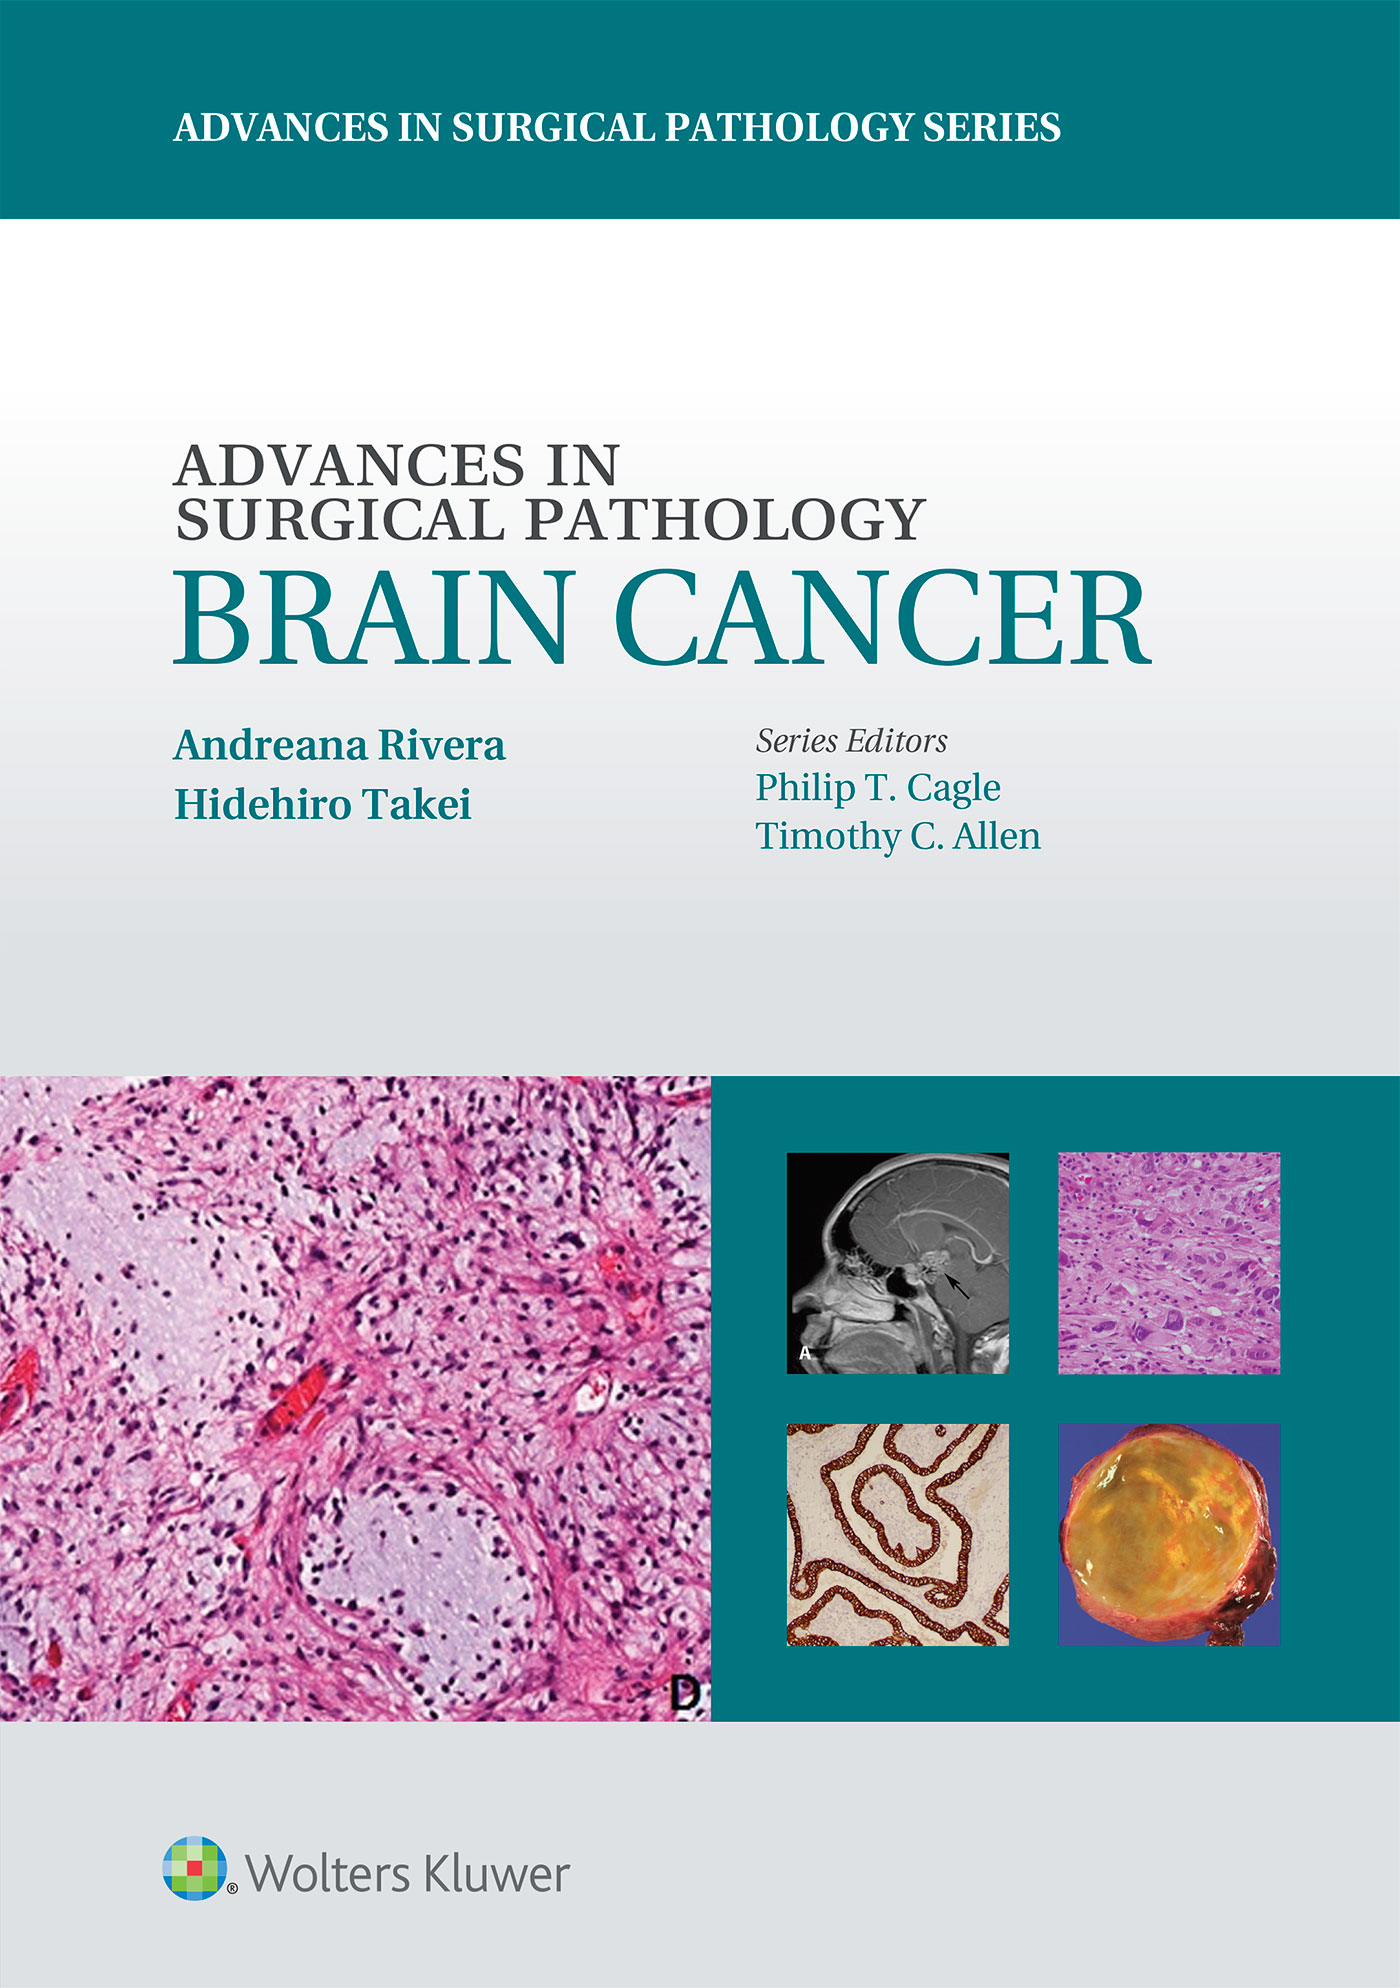 Advances in Surgical Pathology: Brain Cancer